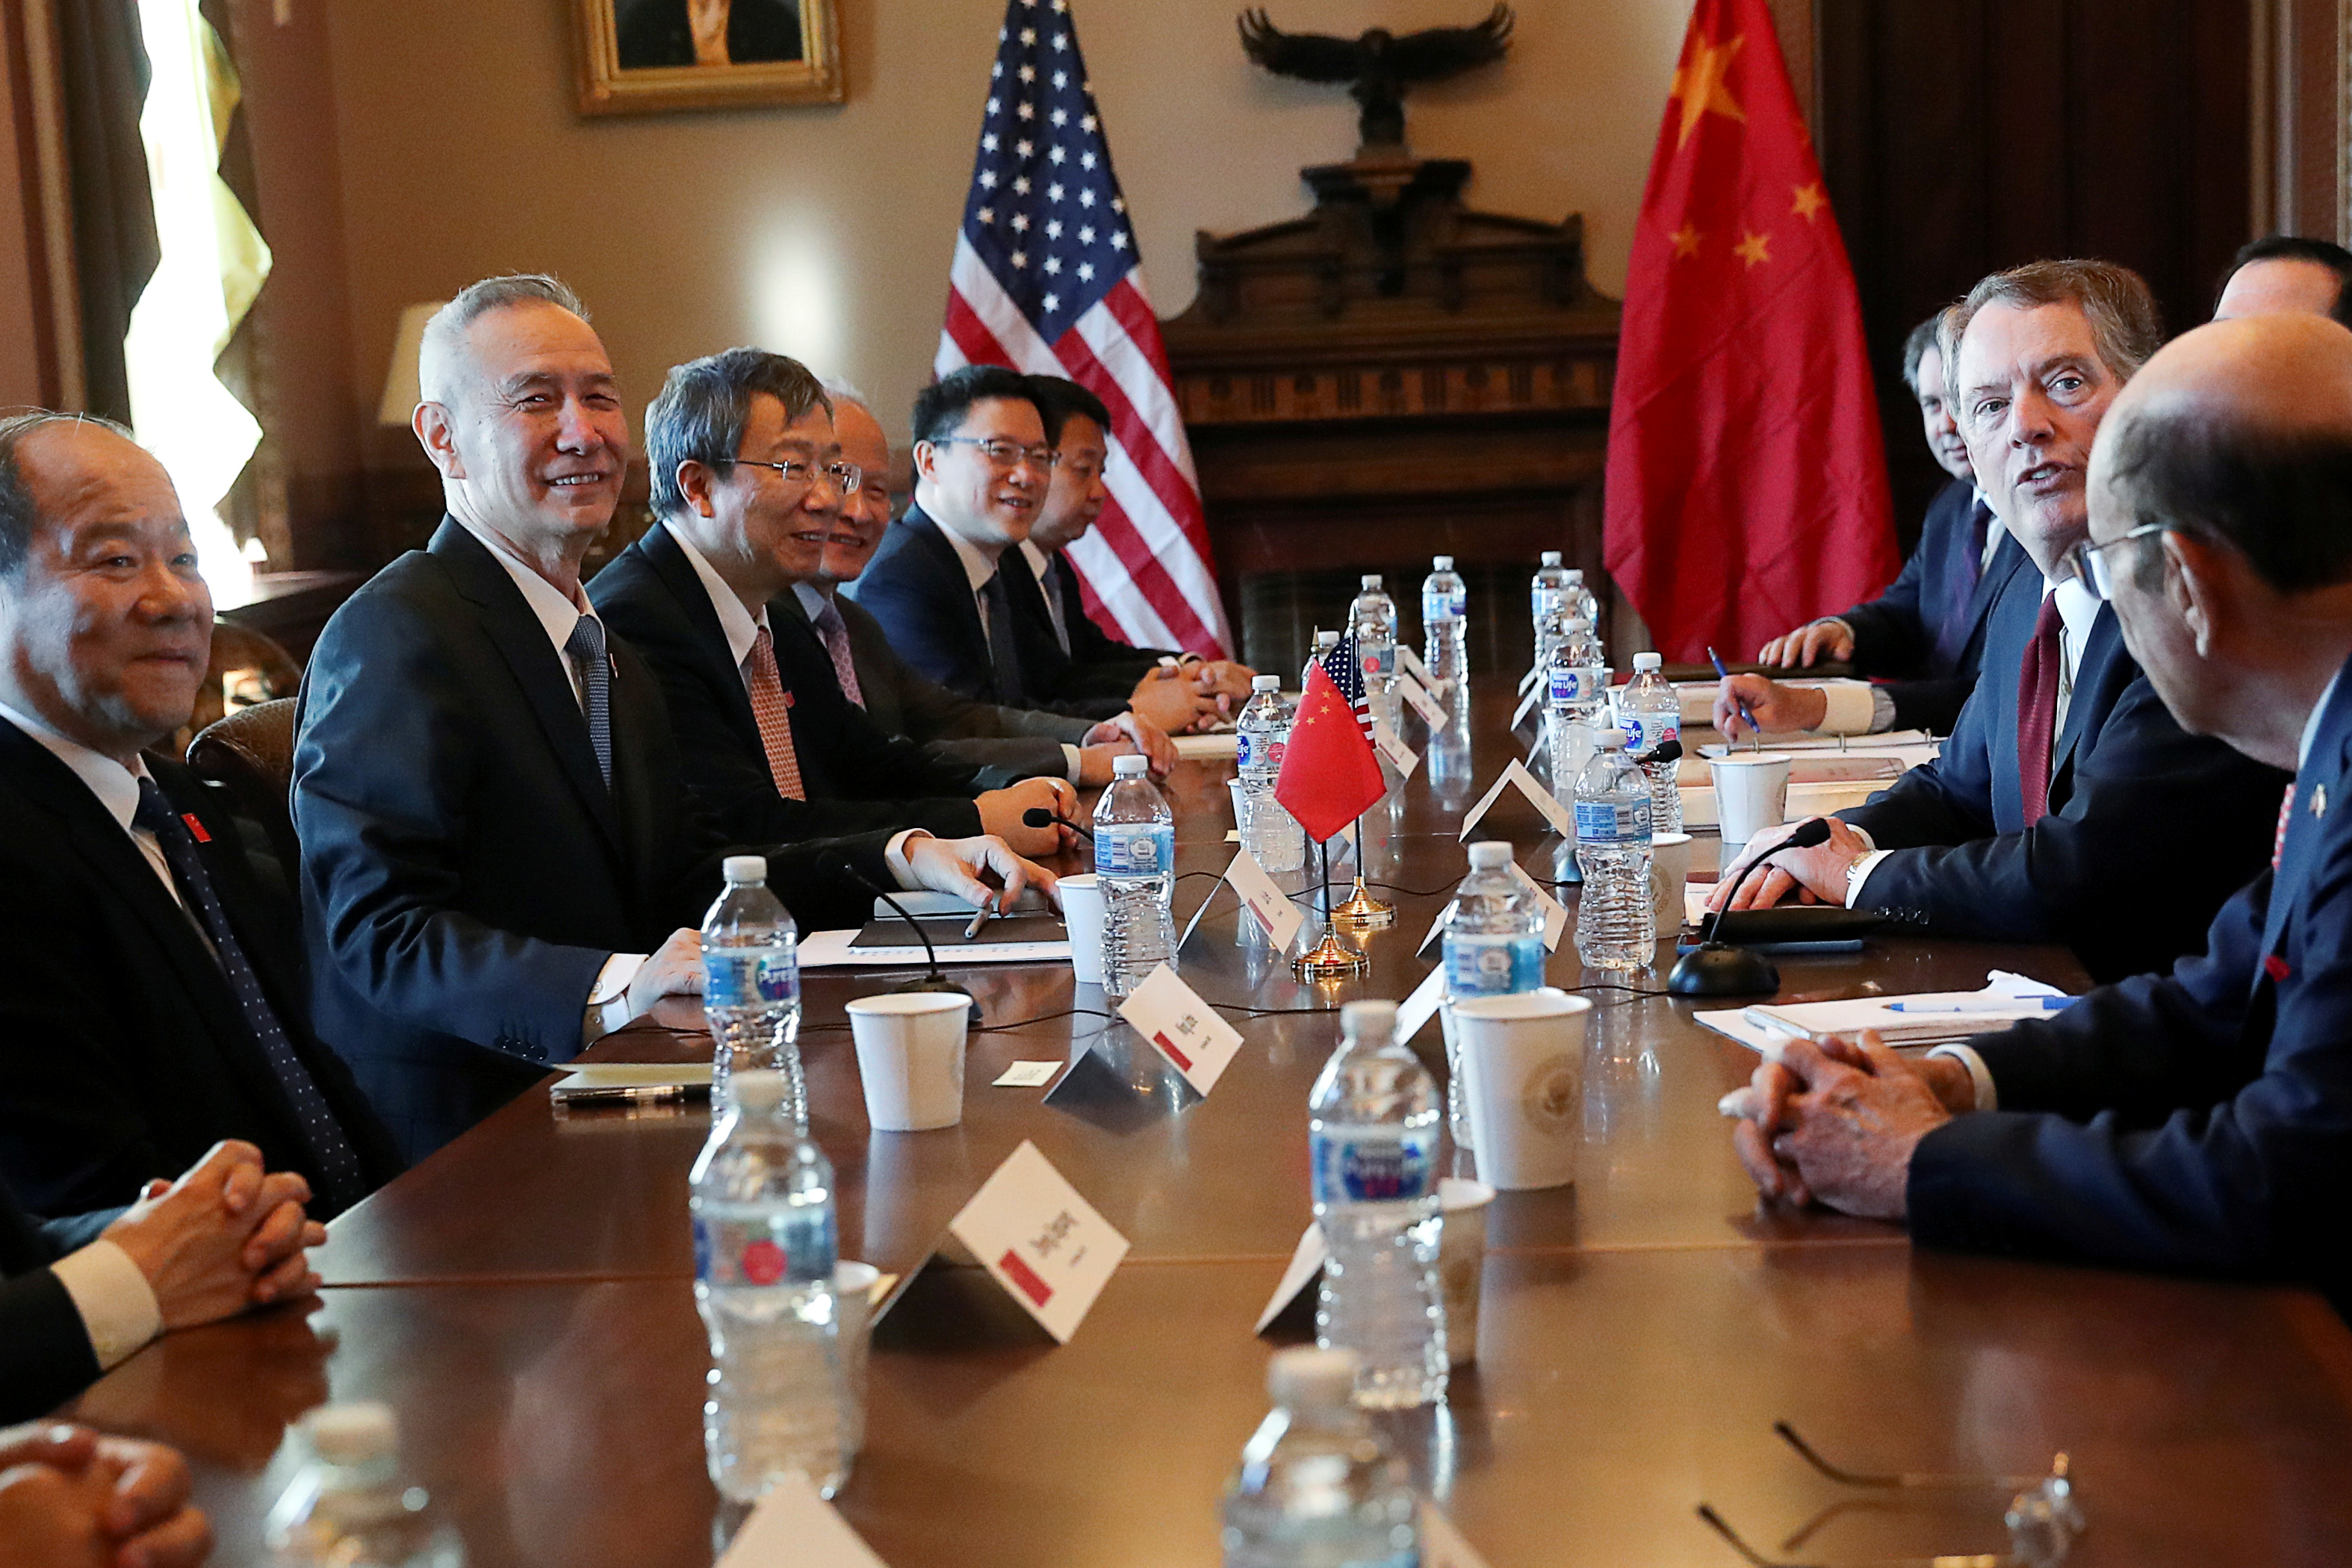 FILE PHOTO: U.S. Trade Representative Robert Lighthizer (2nd right) sits across from China's Vice Premier Liu He (left) during the opening of US-China Trade Talks in the Eisenhower Executive Office Building at the White House in Washington, U.S., January 30, 2019. REUTERS/Leah Millis/File Photo